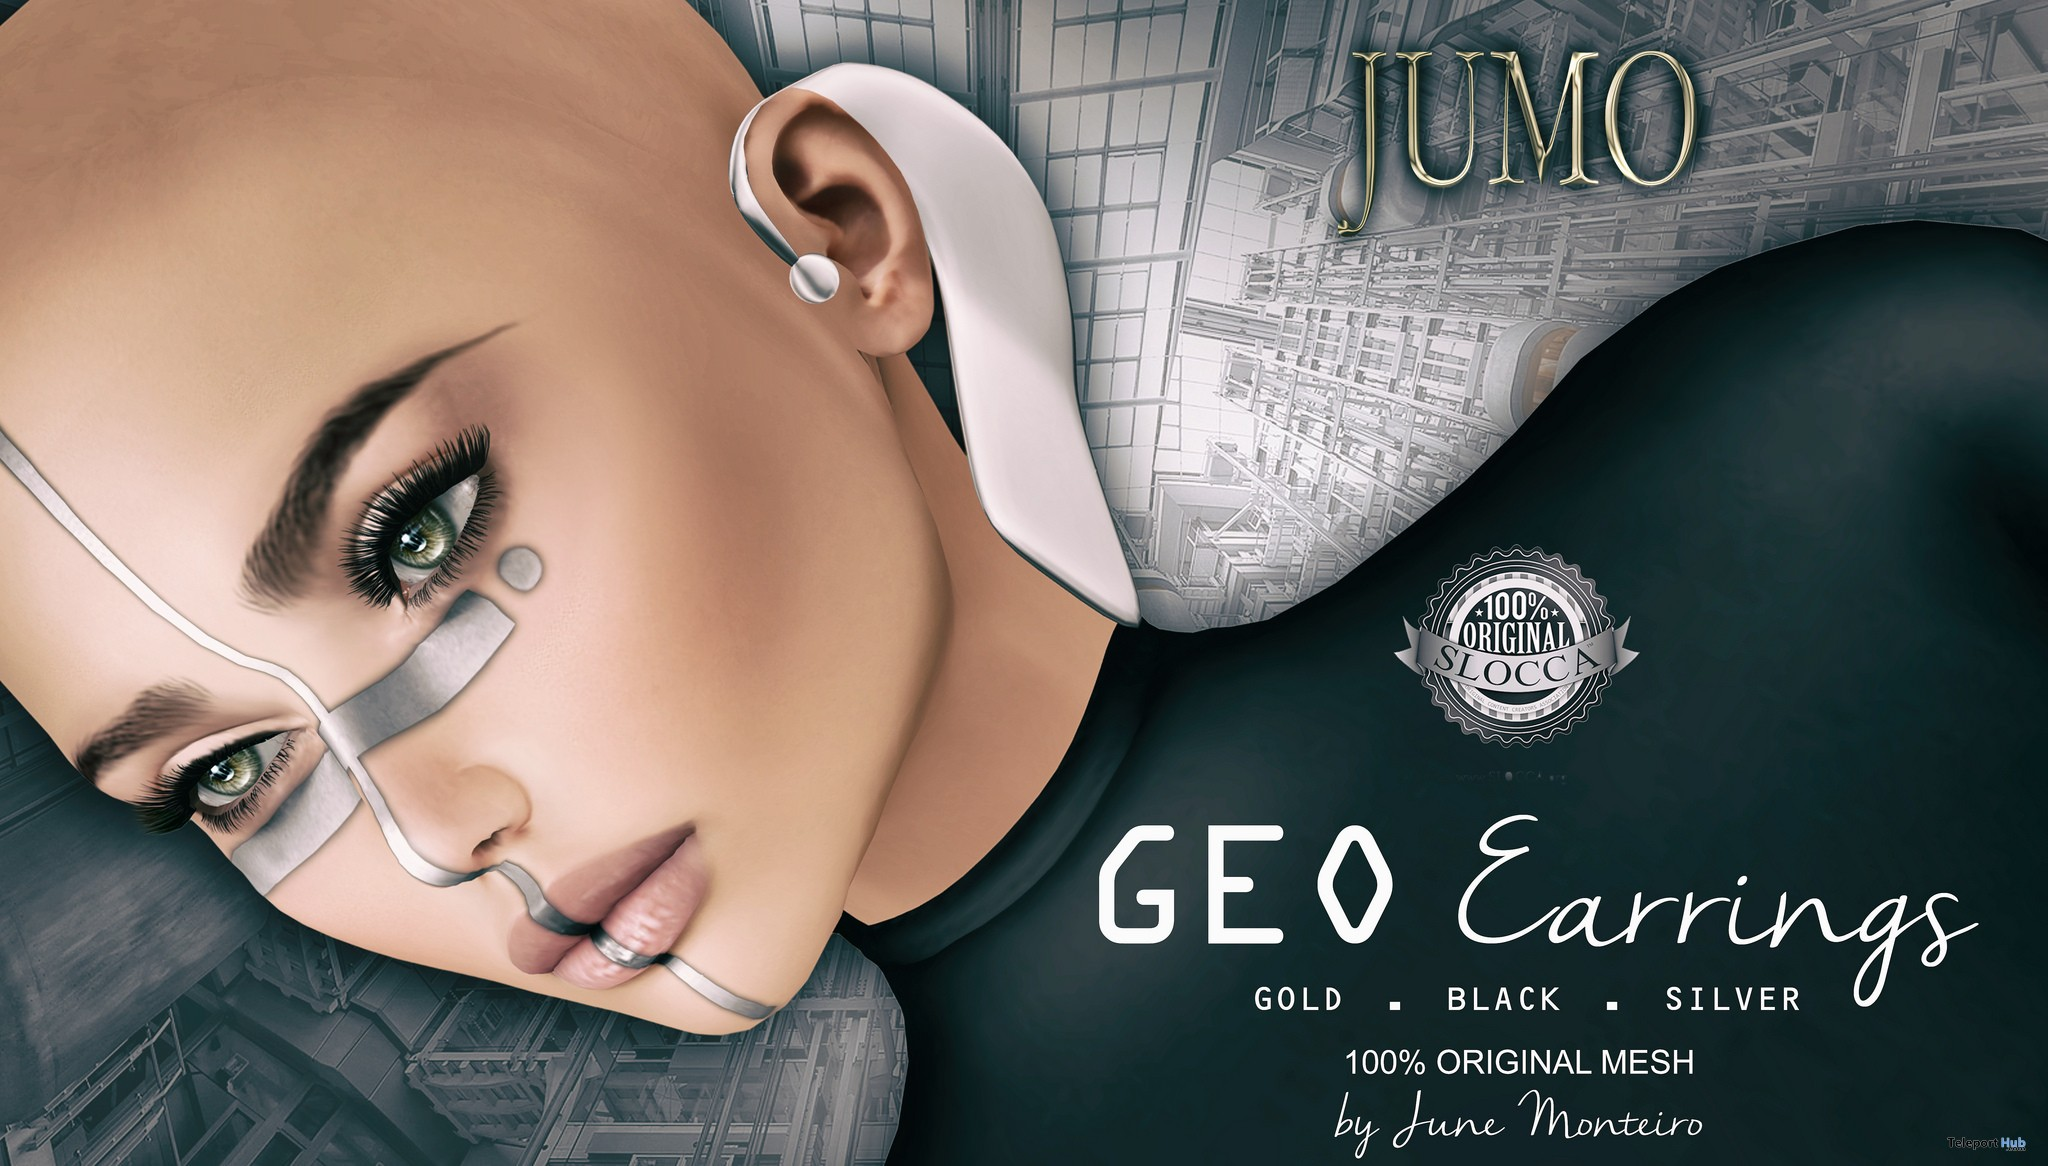 GEO Earrings July 2018 Gift by JUMO Originals - Teleport Hub - teleporthub.com